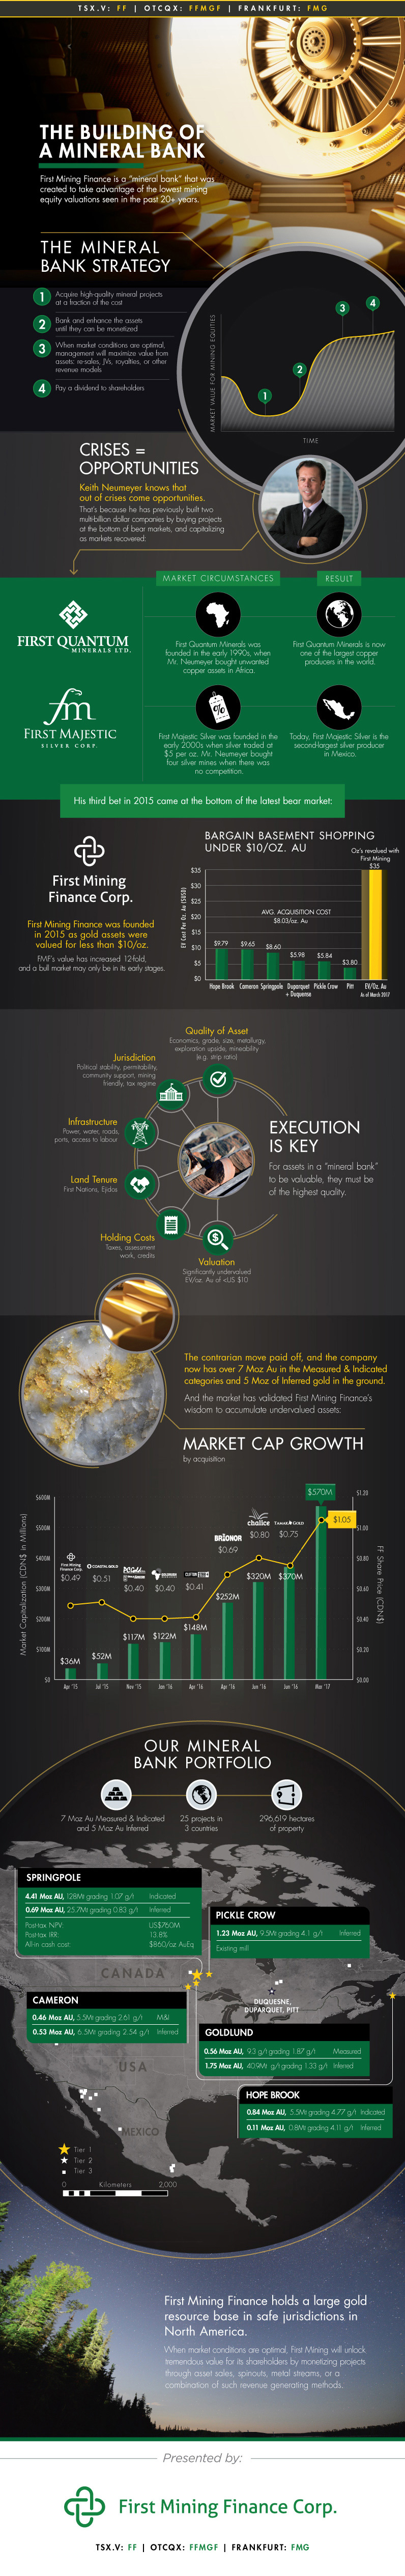 First Mining Finance Infographic